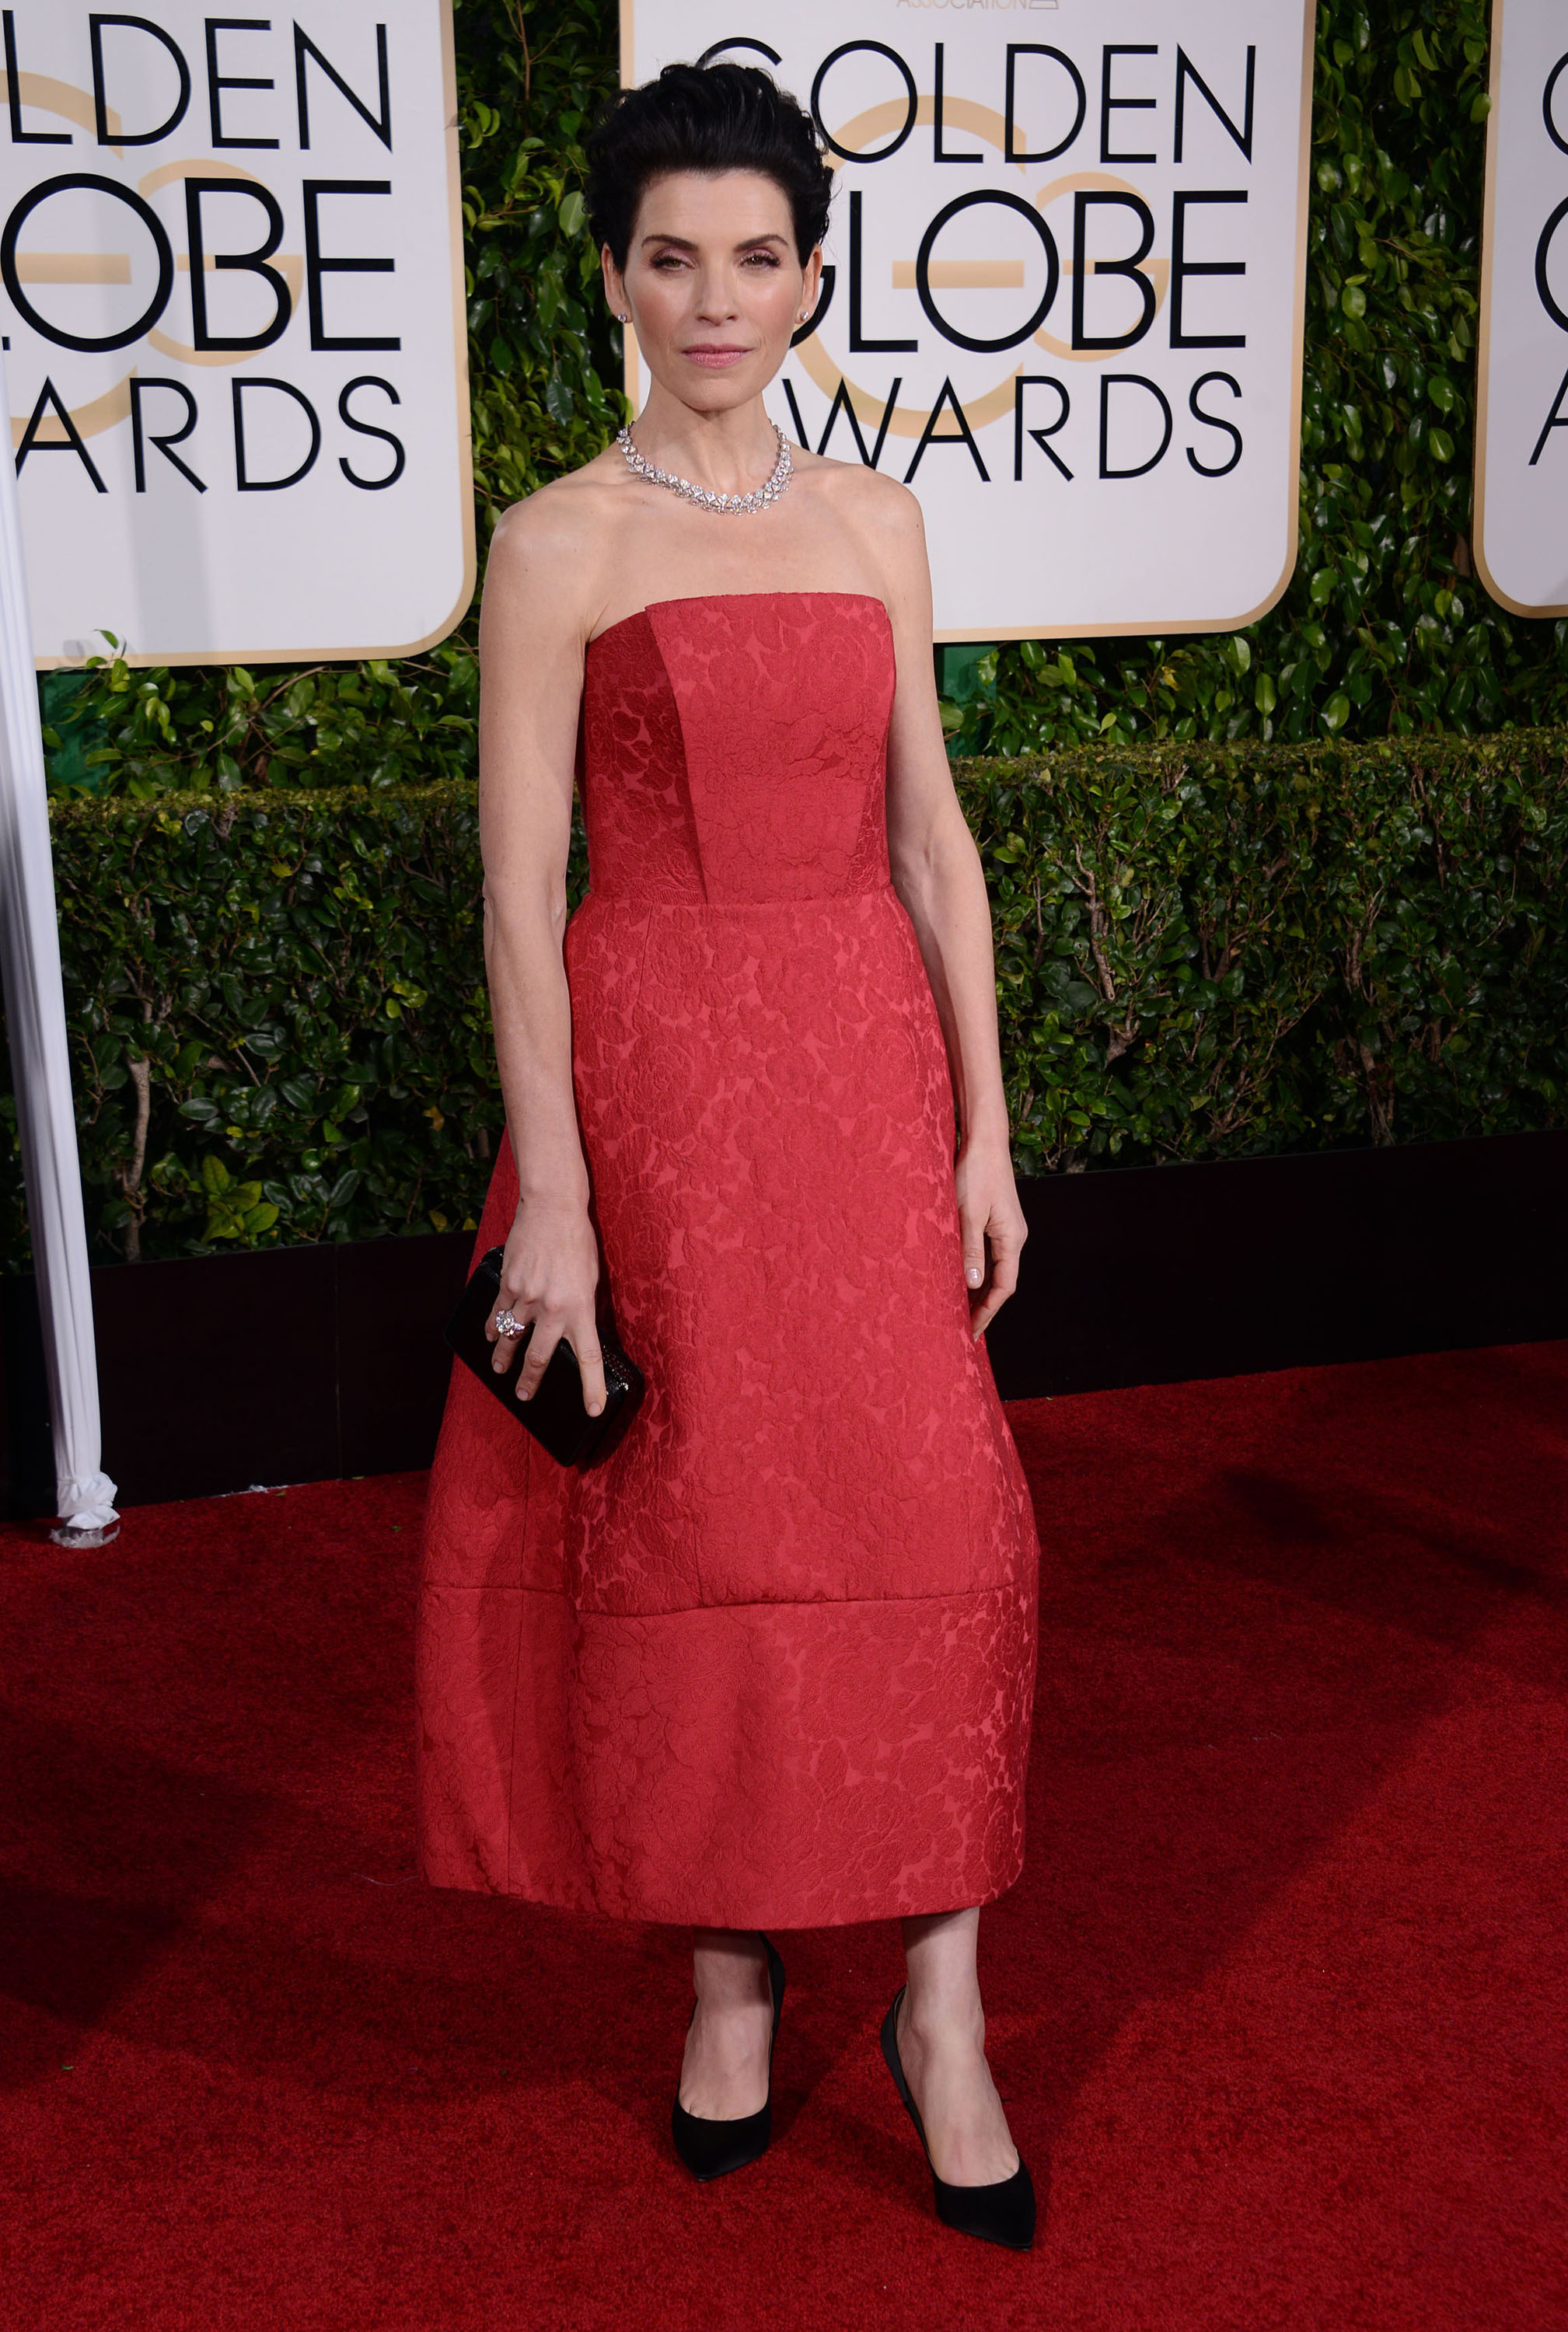 Julianna Margulies at the 2015 Golden Globes